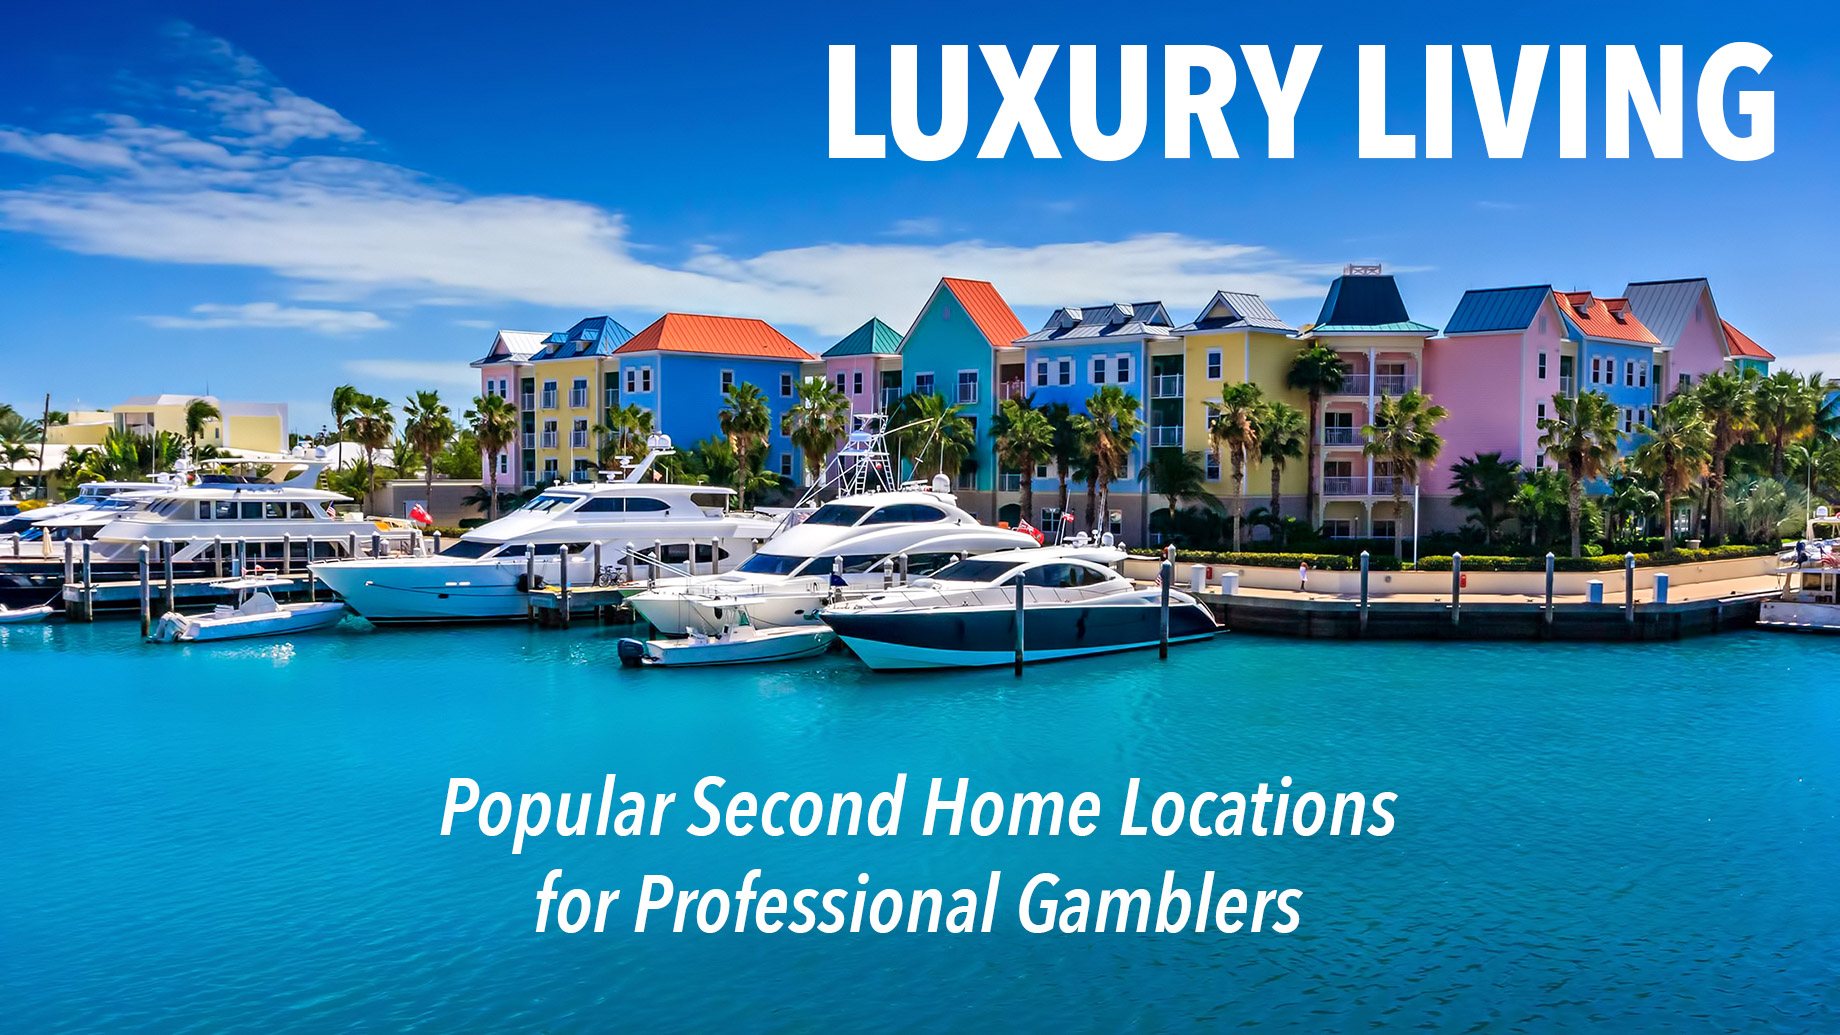 Luxury Living - Popular Second Home Locations for Professional Gamblers